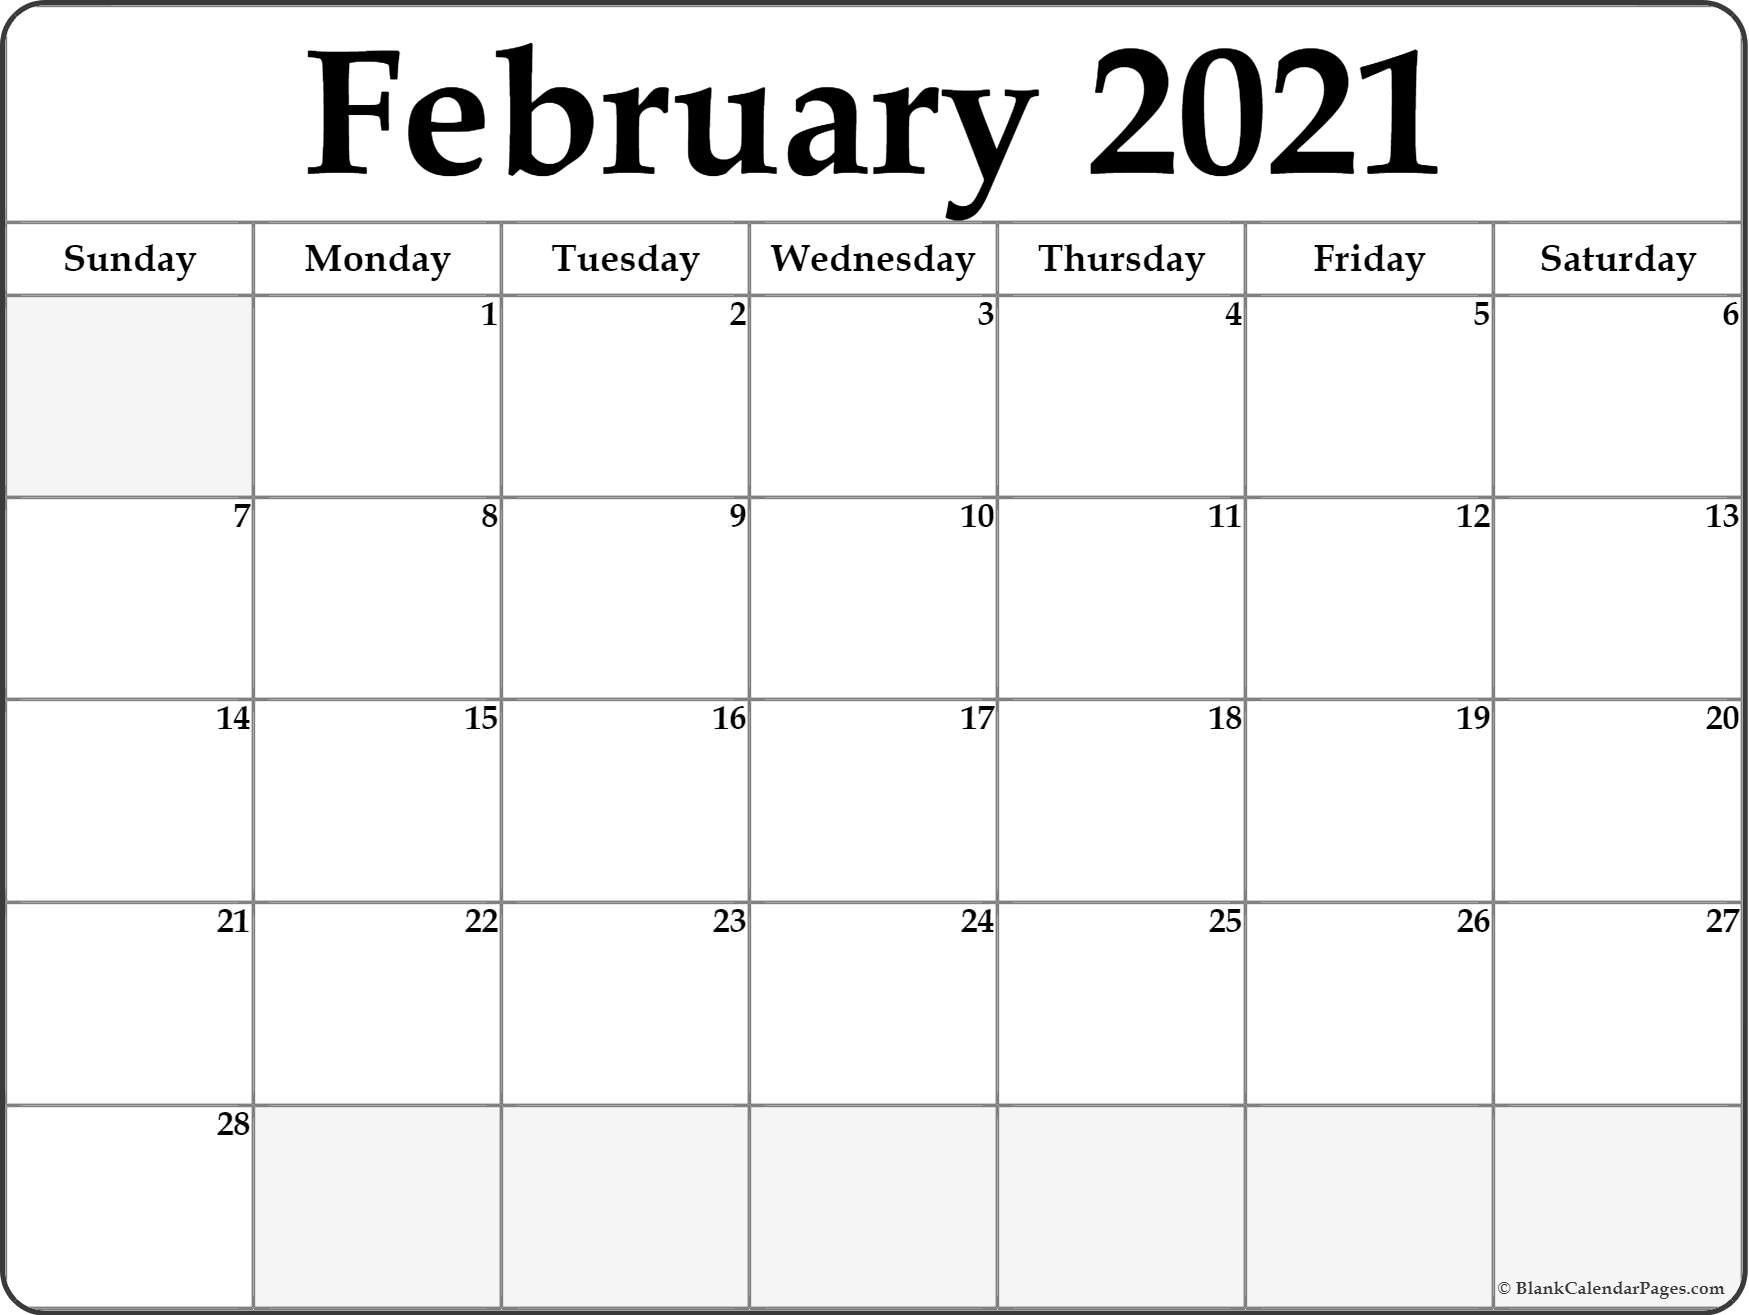 Blank 2021 Calendar By Month Calendar 2021 January February Blank | Calendar printables, Free